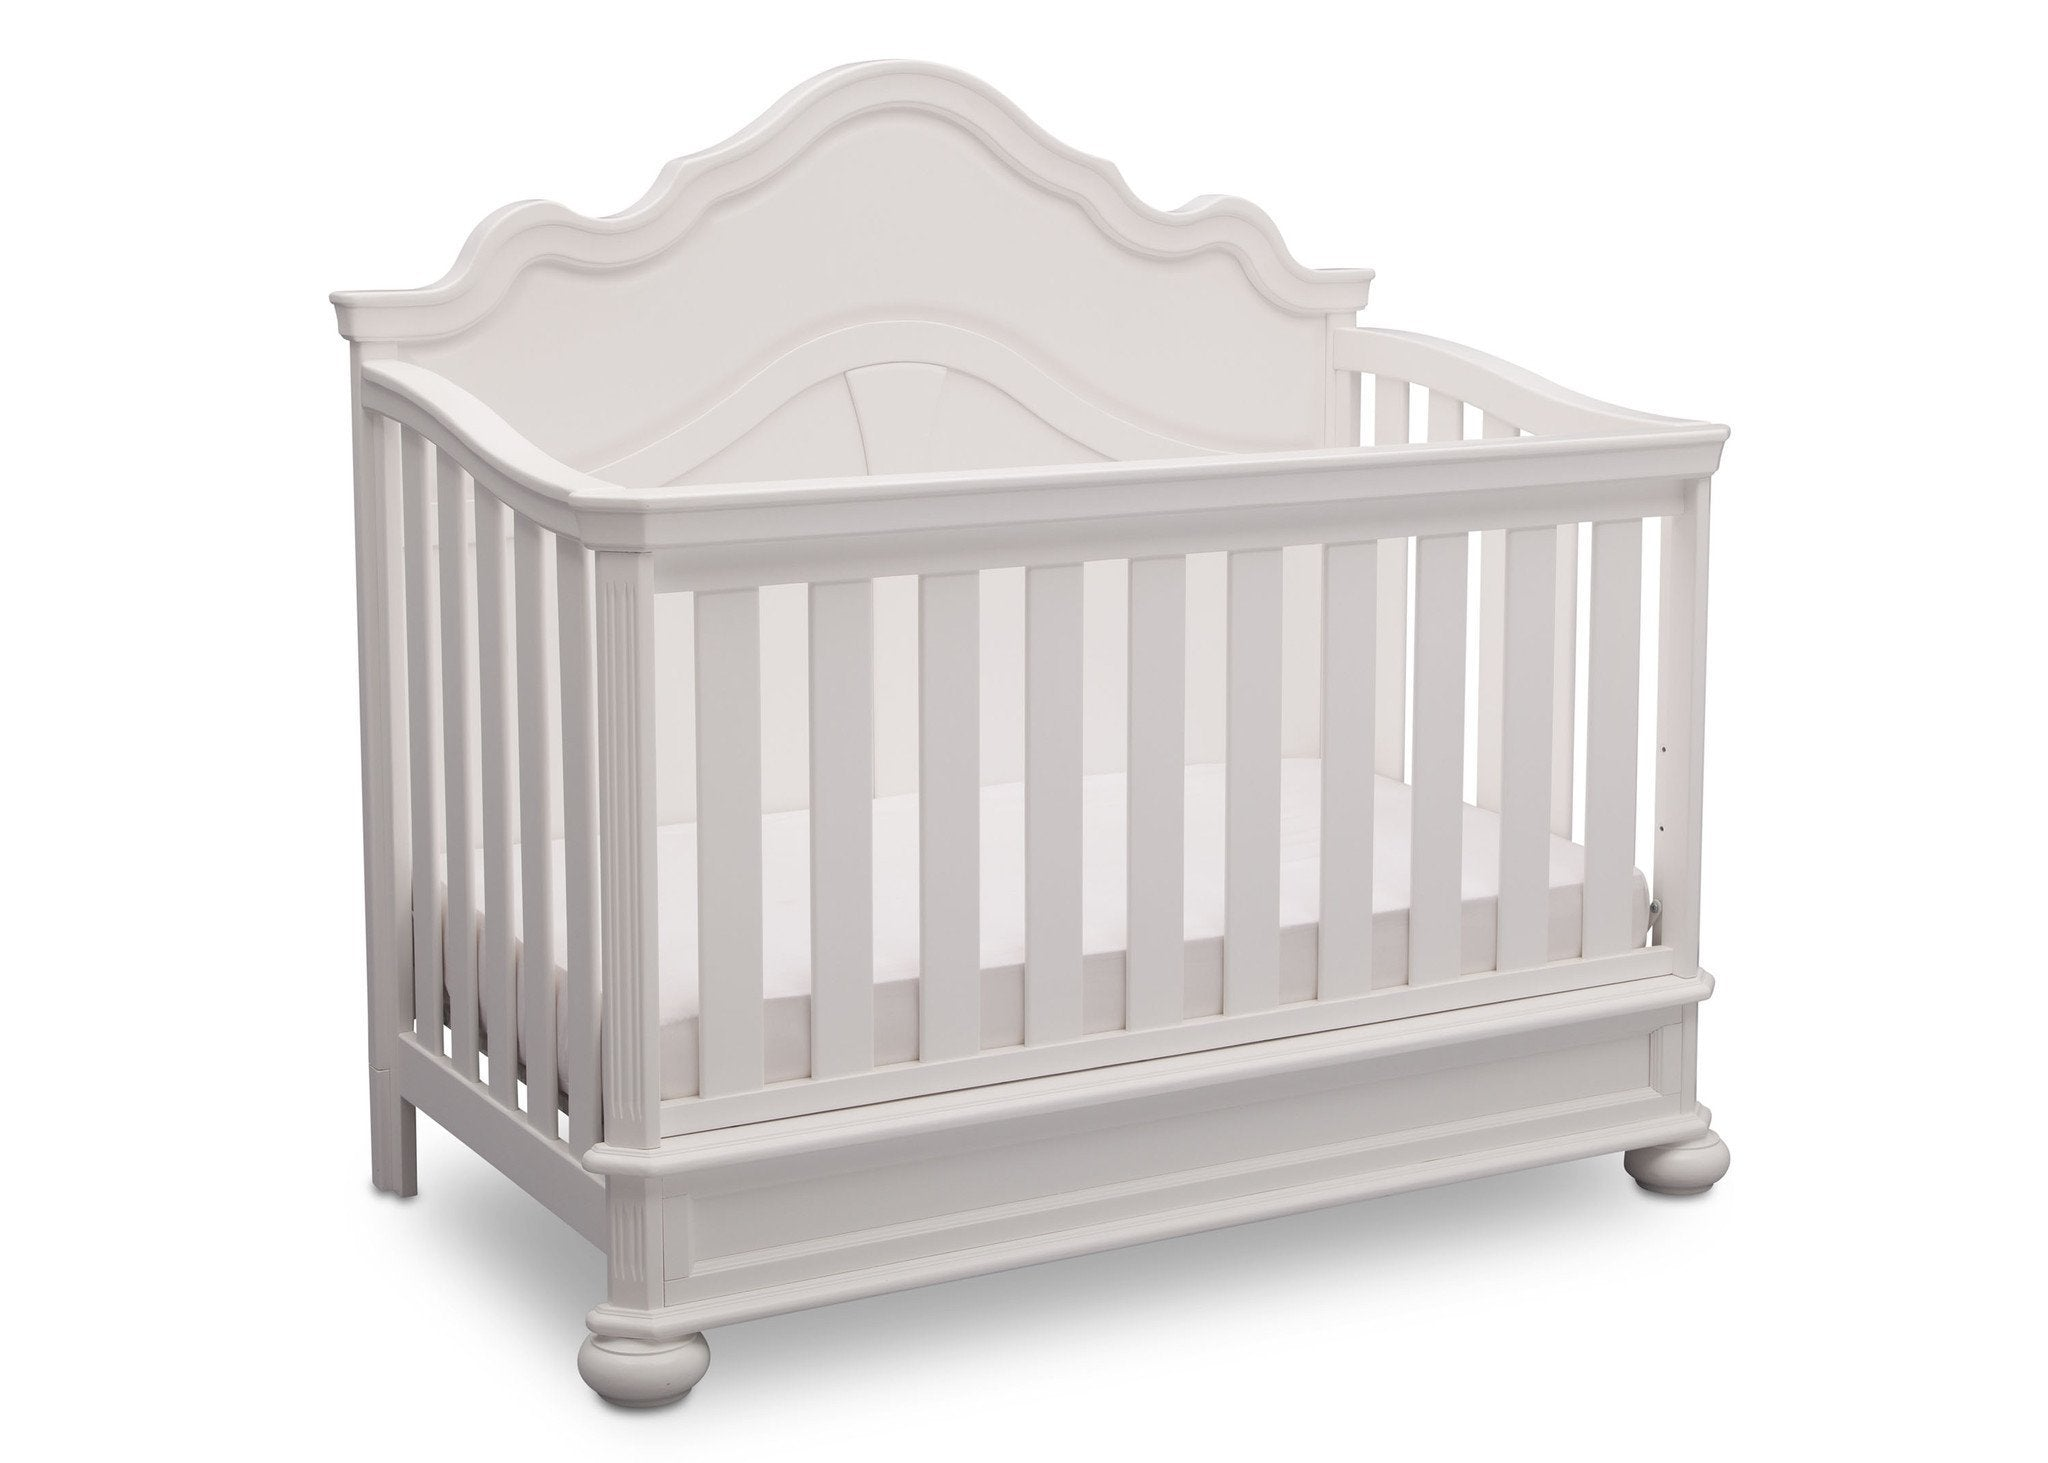 Simmons Kids Bianca (130) Peyton Crib n' more side view a3a